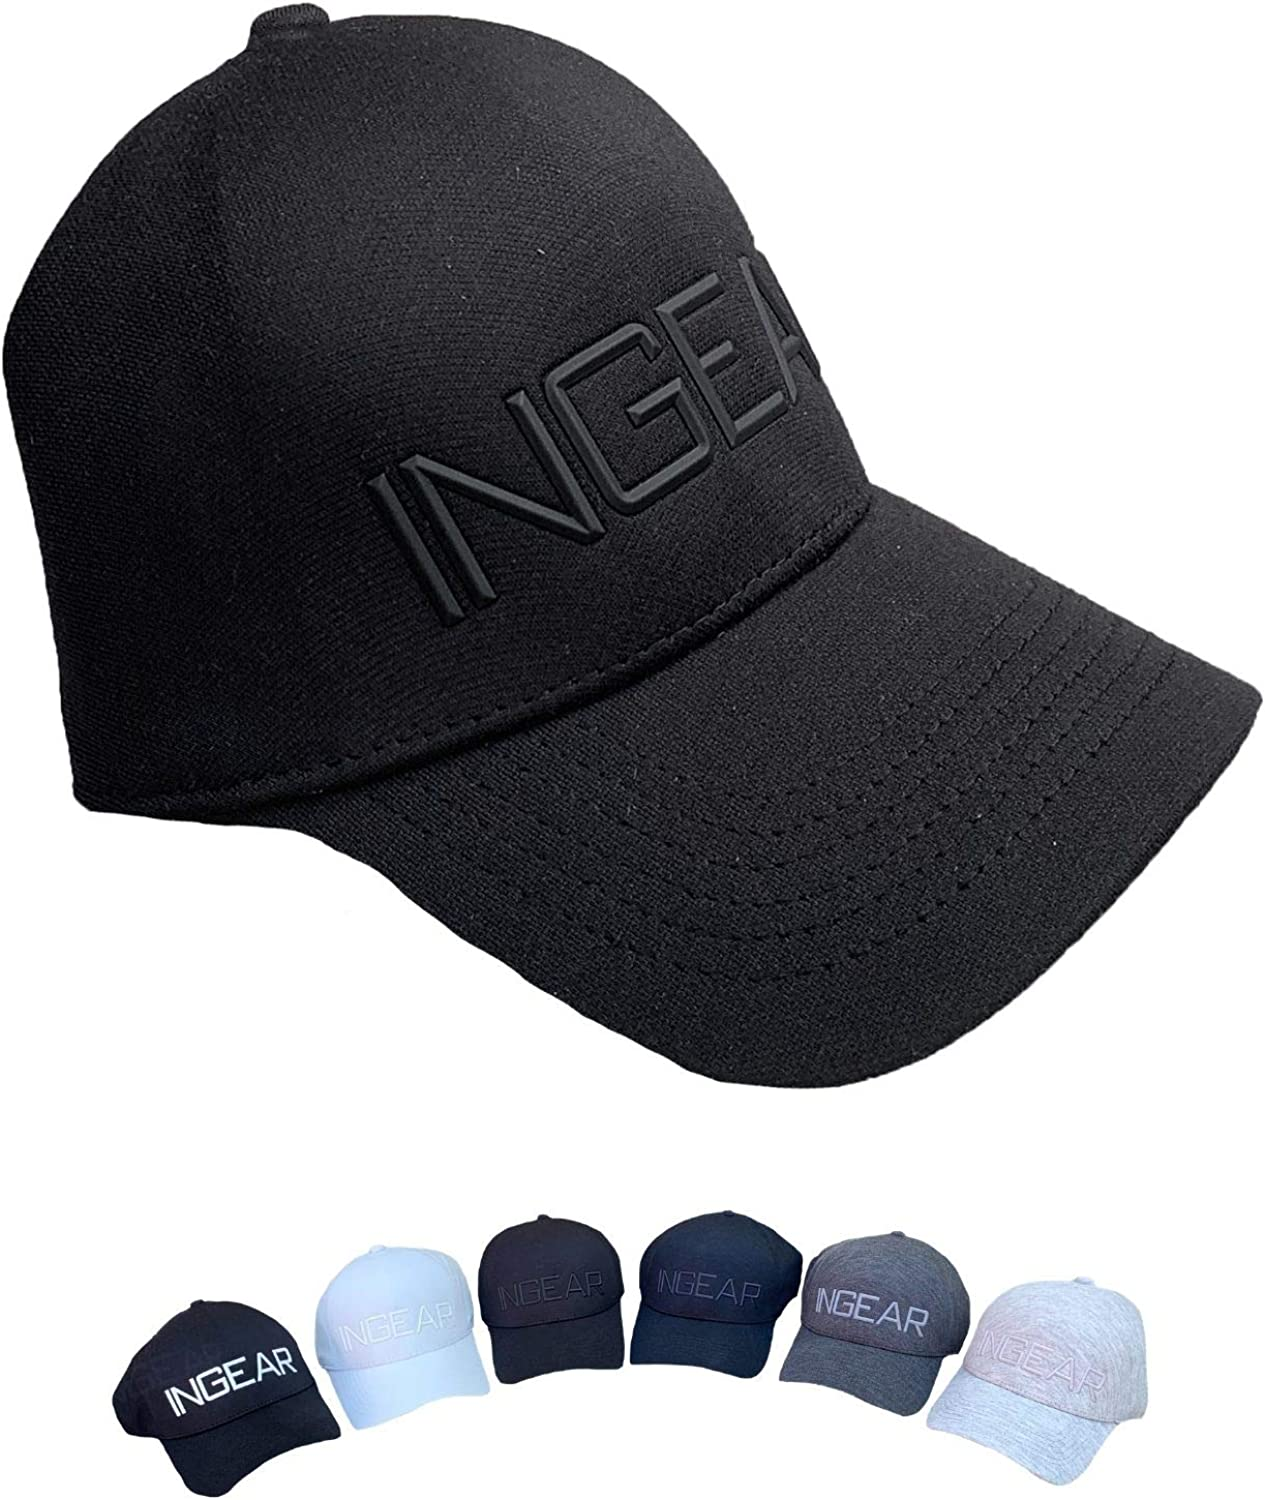 INGEAR Adjustable Breathable Baseball Cap - UPF 50+ for Men and Women